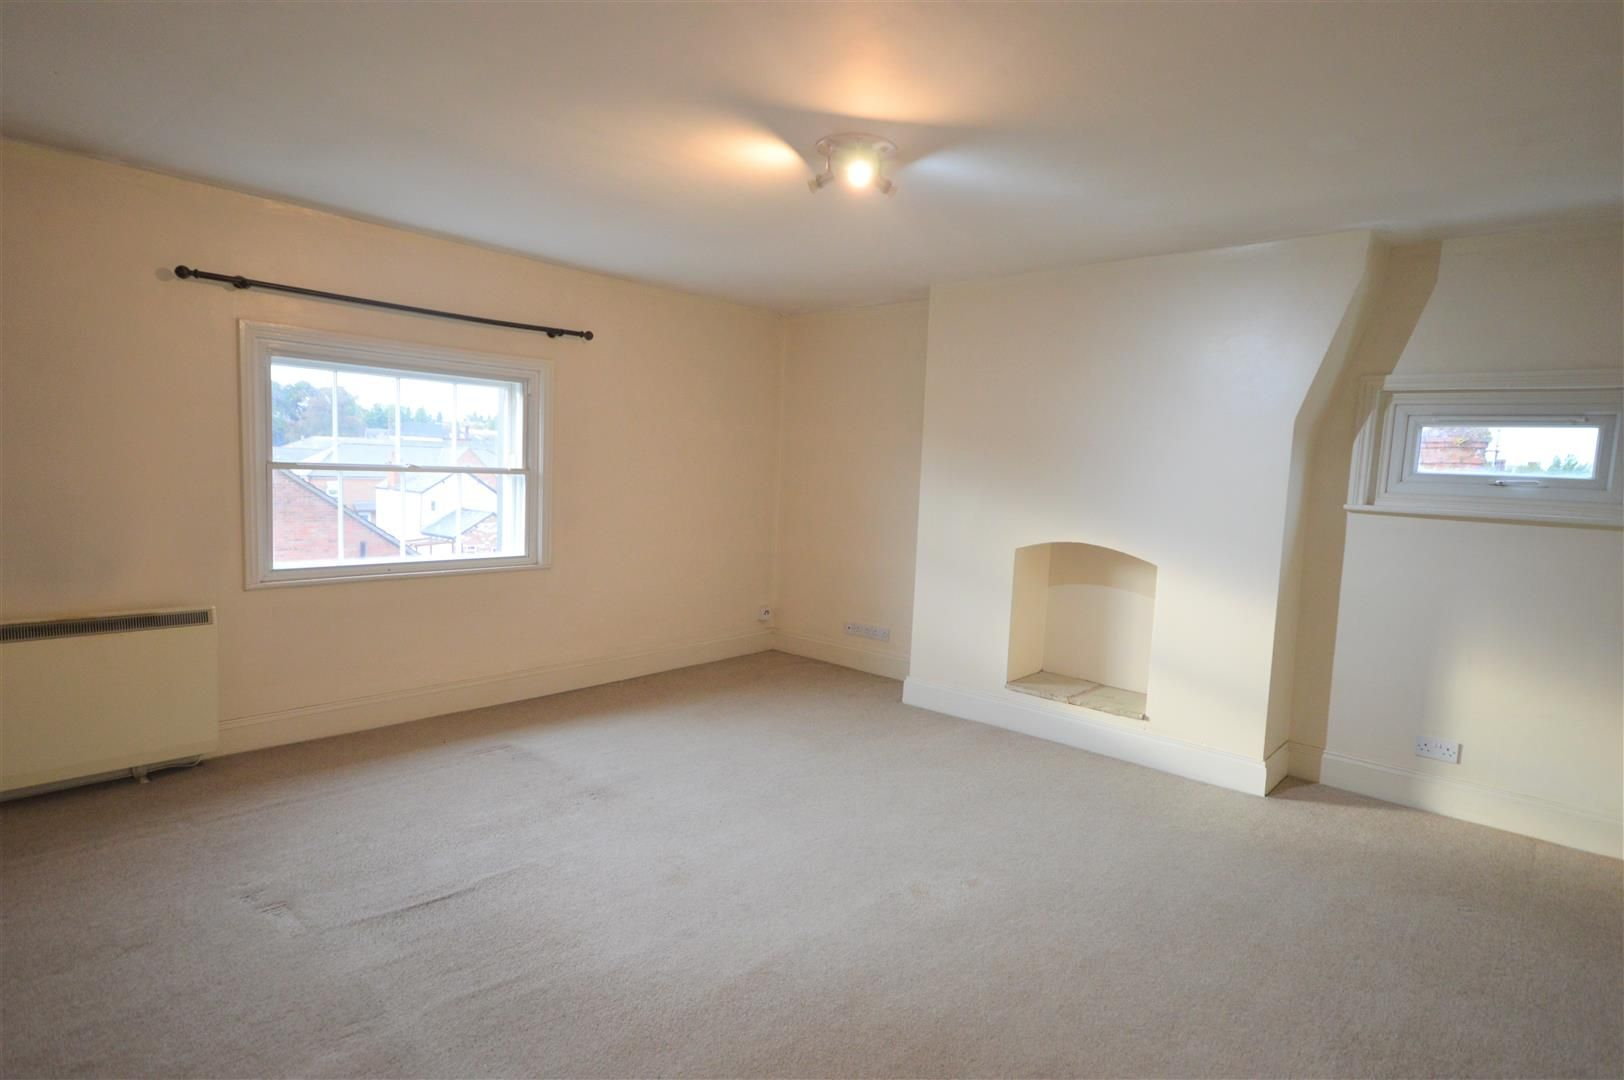 2 bed flat for sale in Leominster, HR6